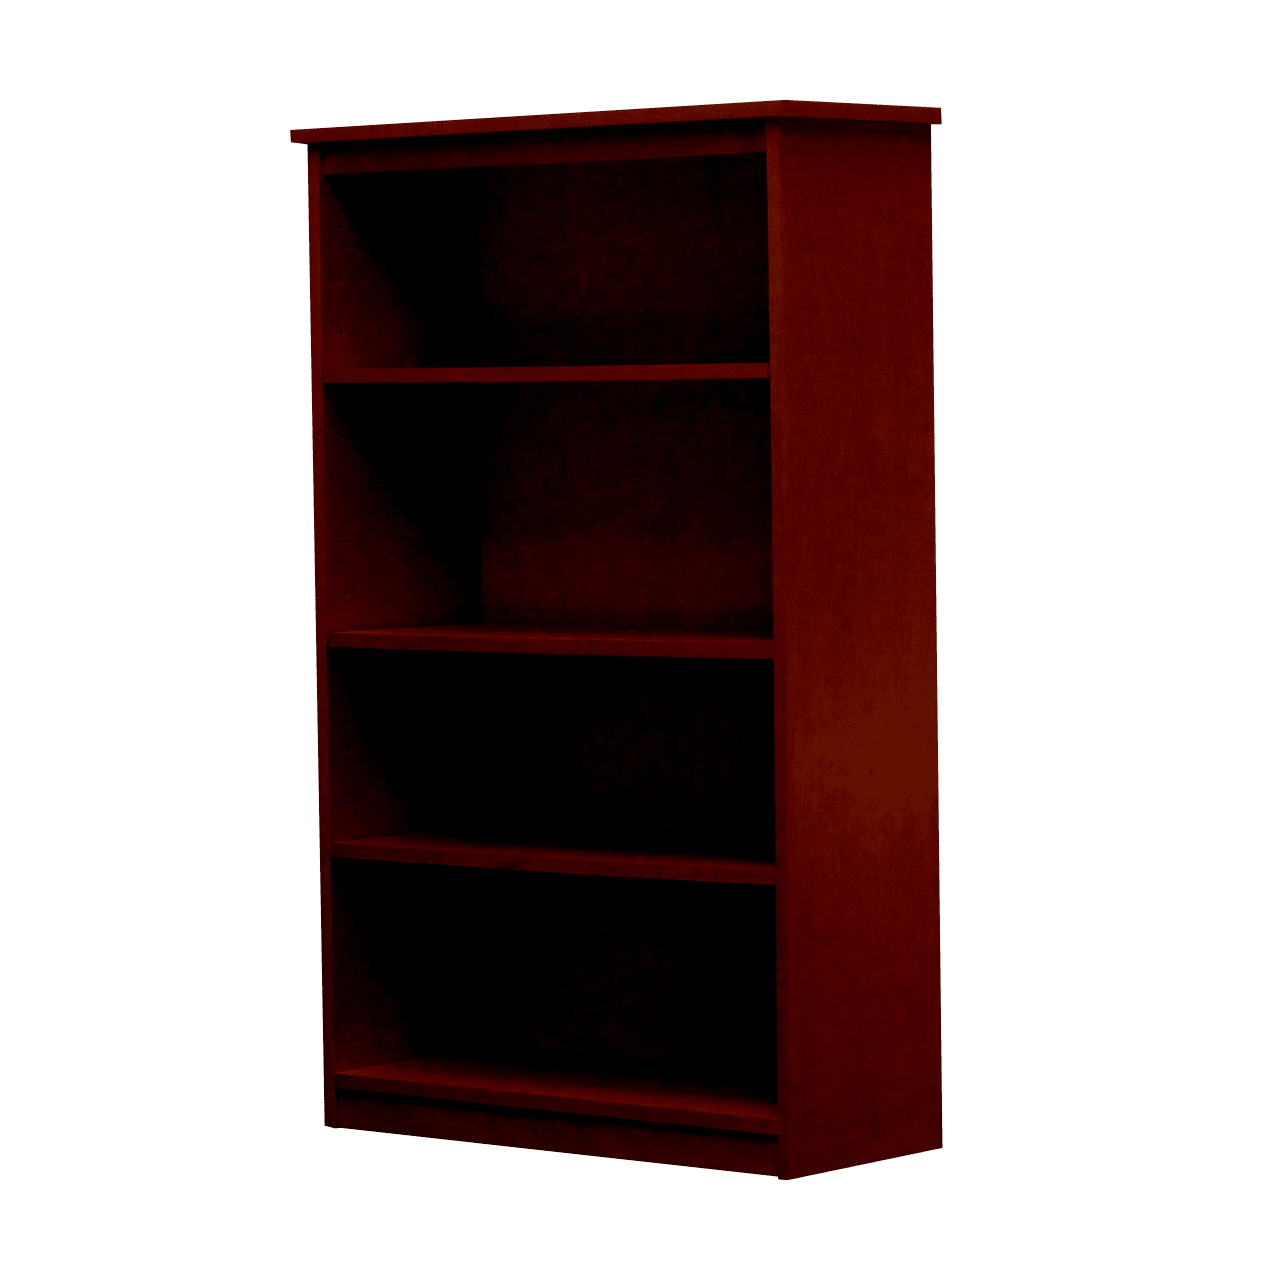 Gothic furniture gr21 b ac lexington birch bookcase with three shelves in antique cherry